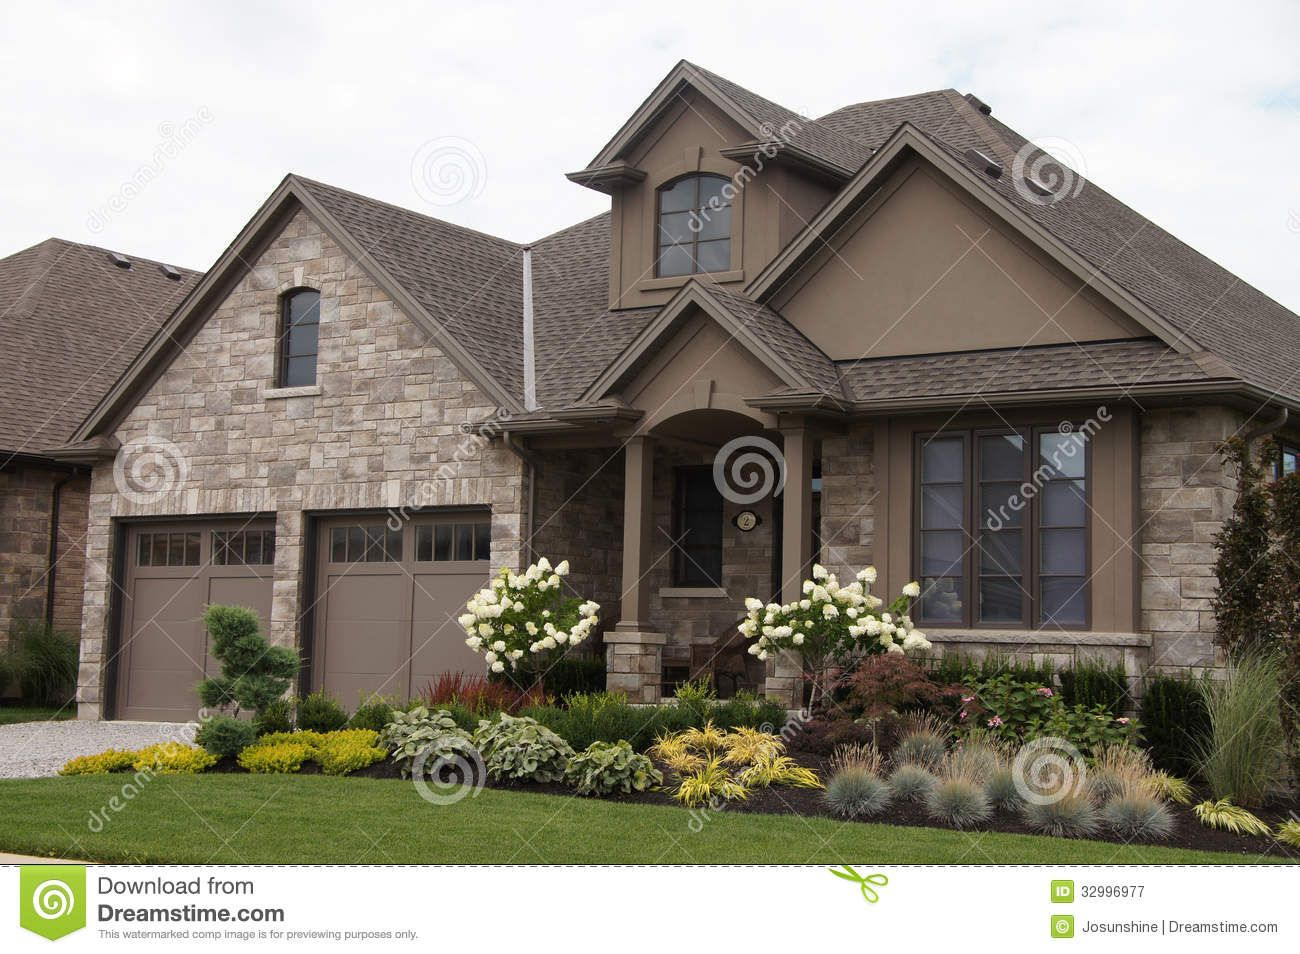 Design Stucco And Stone Homes the perfect paint schemes for house exterior stone houses colors stucco homes stone